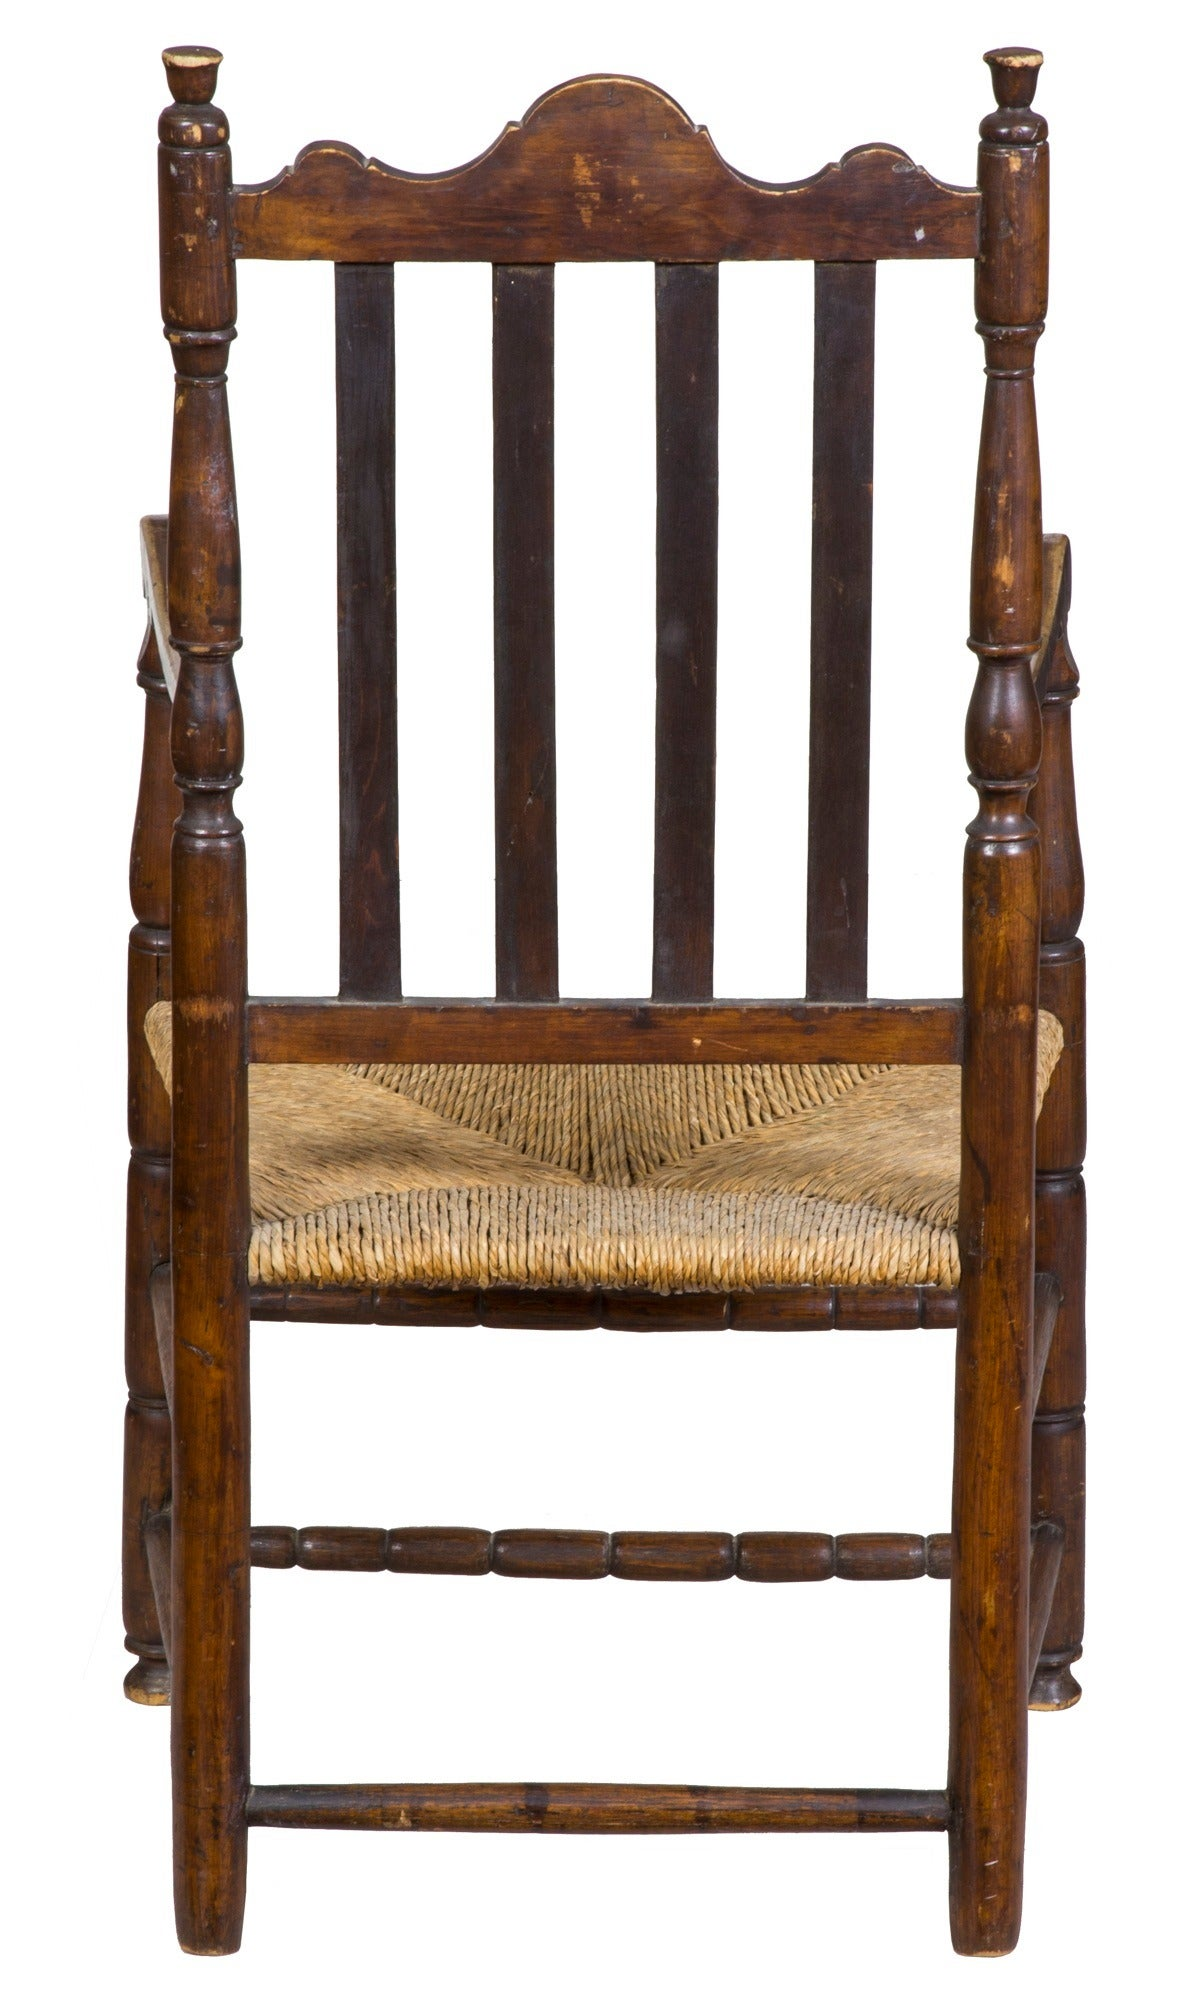 This armchair relates to an example shown in Bishop, the American chair: Three centuries of style (see scan) with reeded vertical slats on the back and the sausage turnings at the base. Unlike the comparative example illustrated, the crest of our